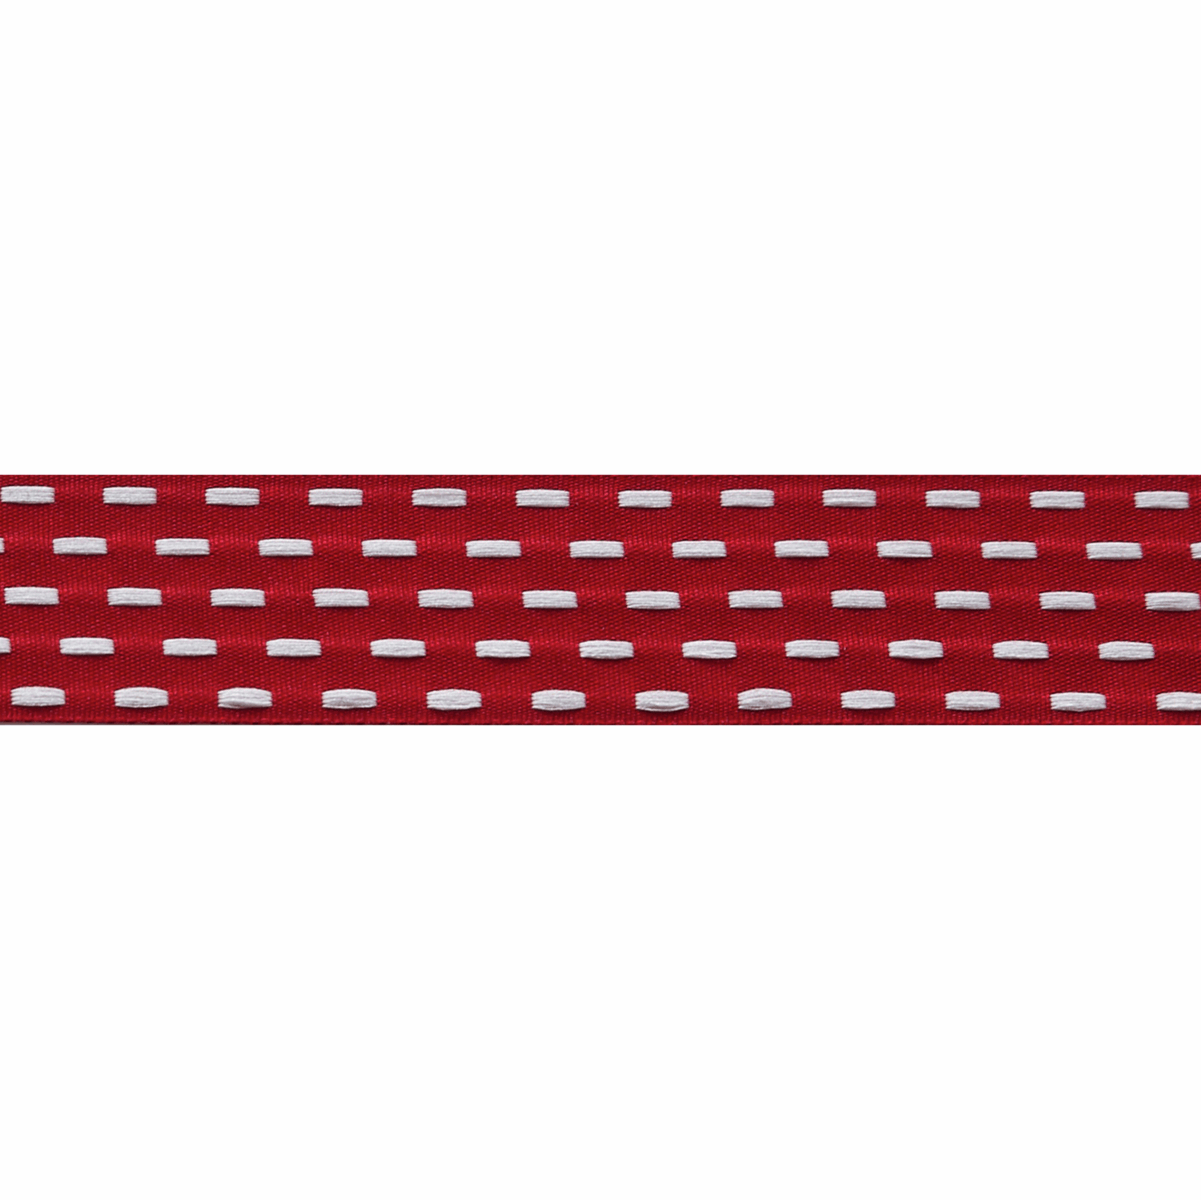 Berisfords Parallel Stitch Ribbon - 25mm Wide - Scarlet / White